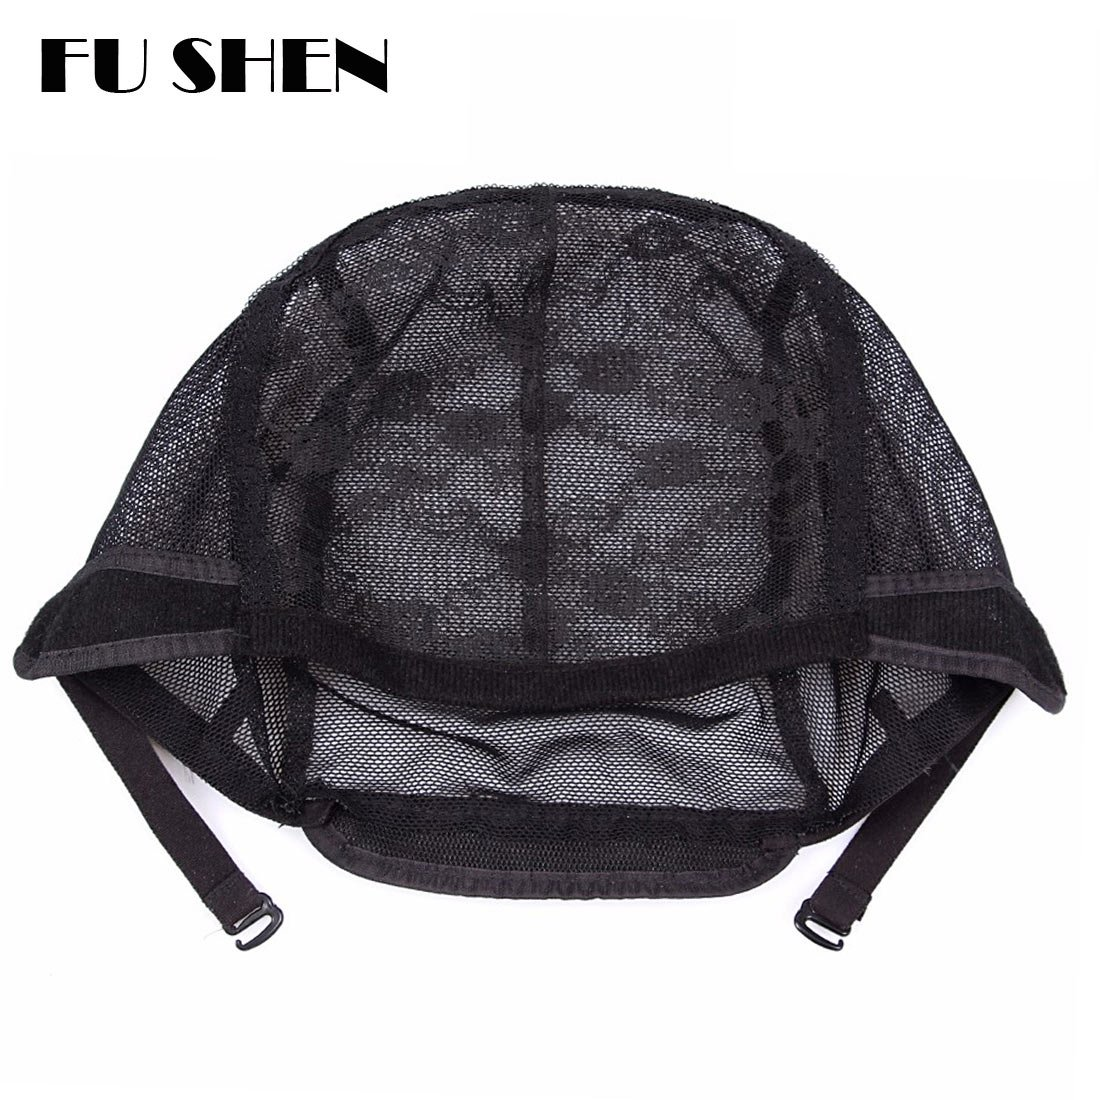 Elastic Wig Caps For Making Wigs Stretch Lace Weaving Cap Extra Large For Big Head with Adjustable Straps and Combs (Black 1 Piece XL-23Inch) by FU SHEN (Image #5)